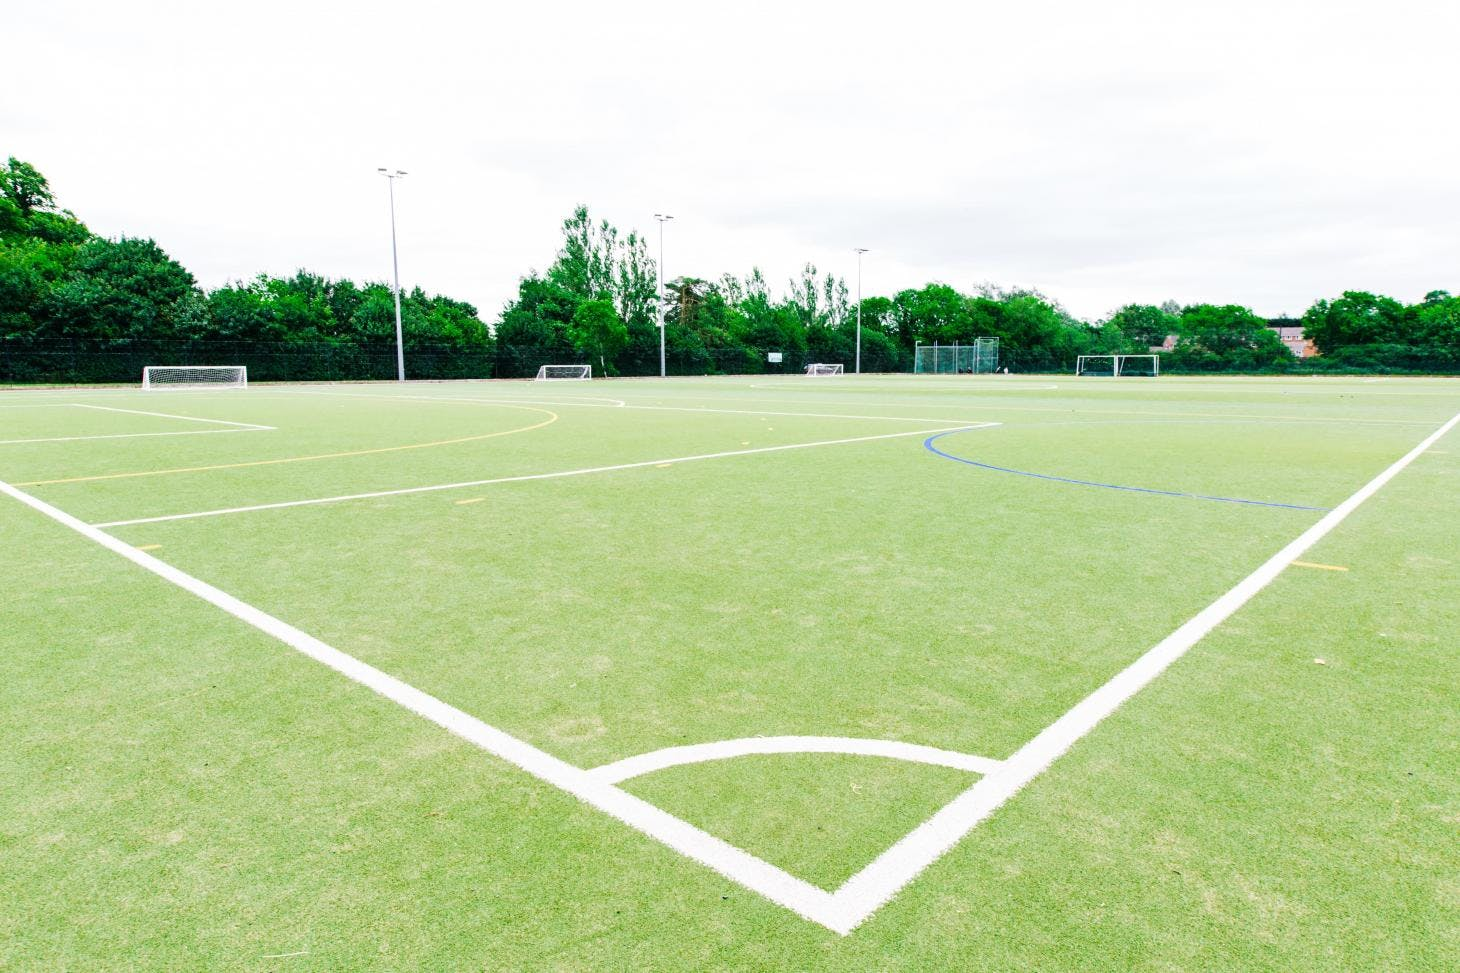 Swan Pool and Leisure Centre 7 a side   Astroturf football pitch